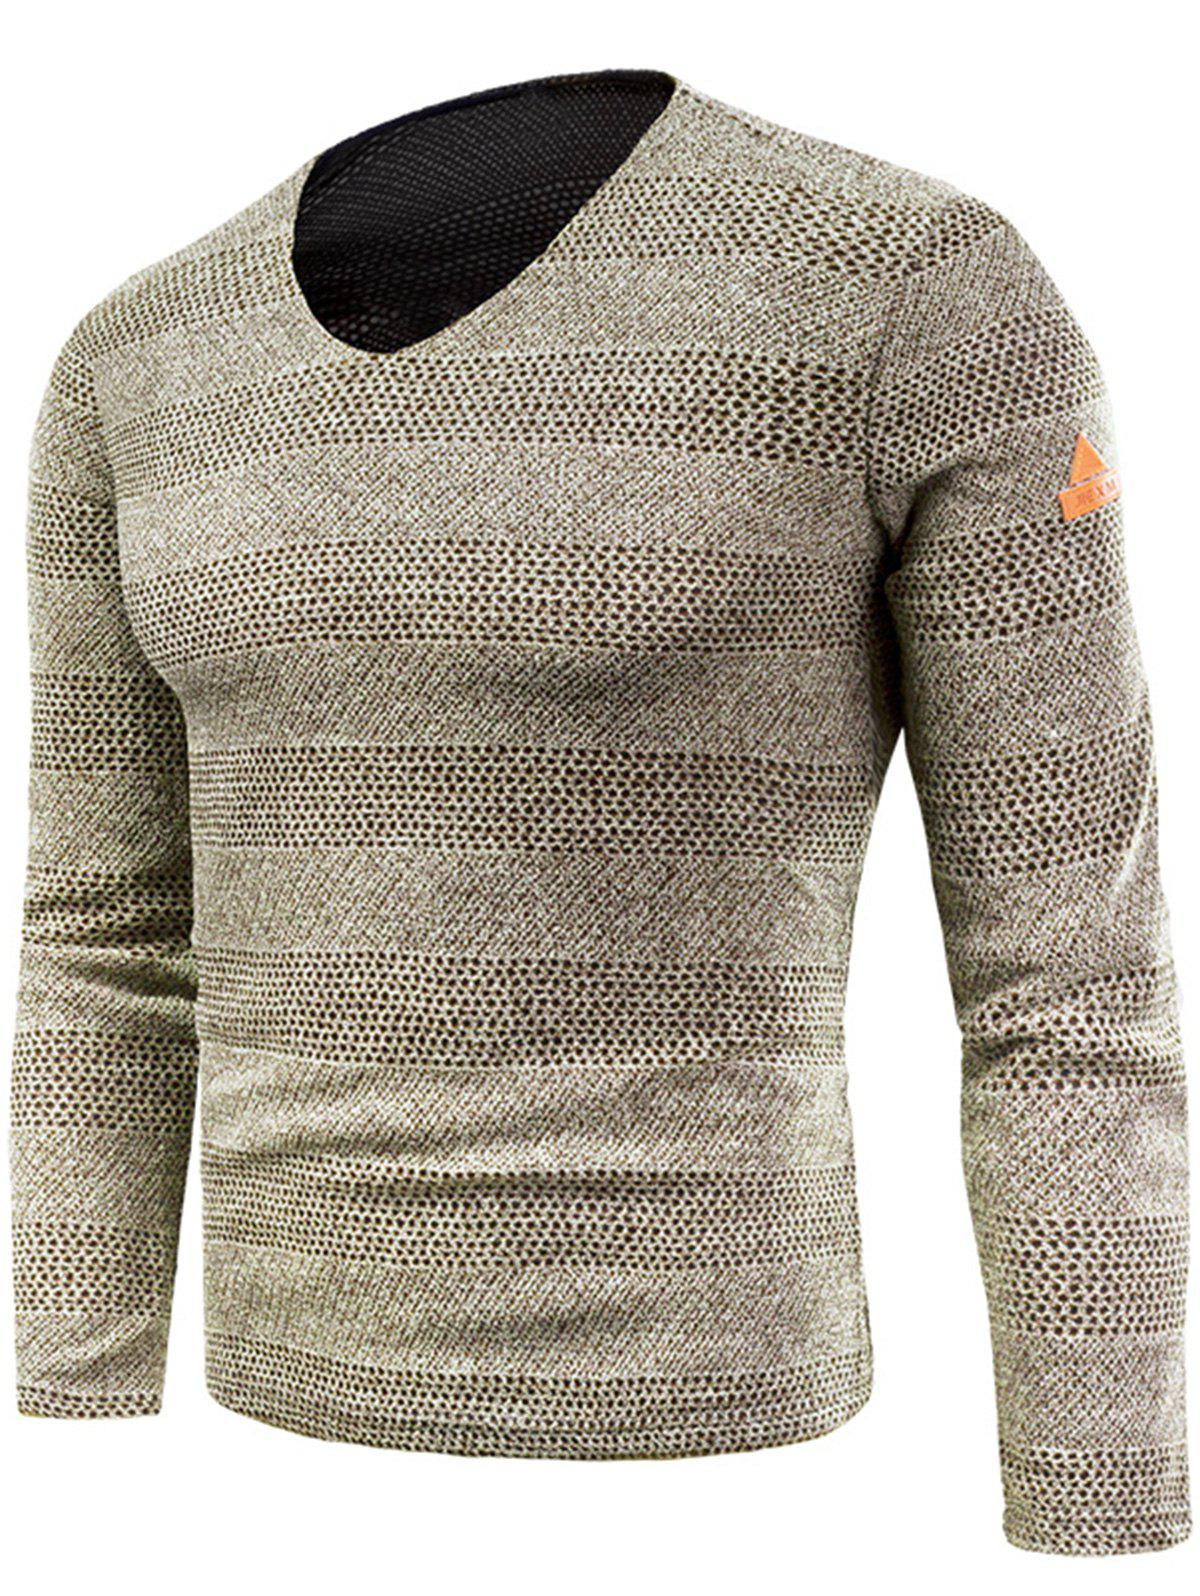 Trendy V Neck Long Sleeve Knitted T-shirt